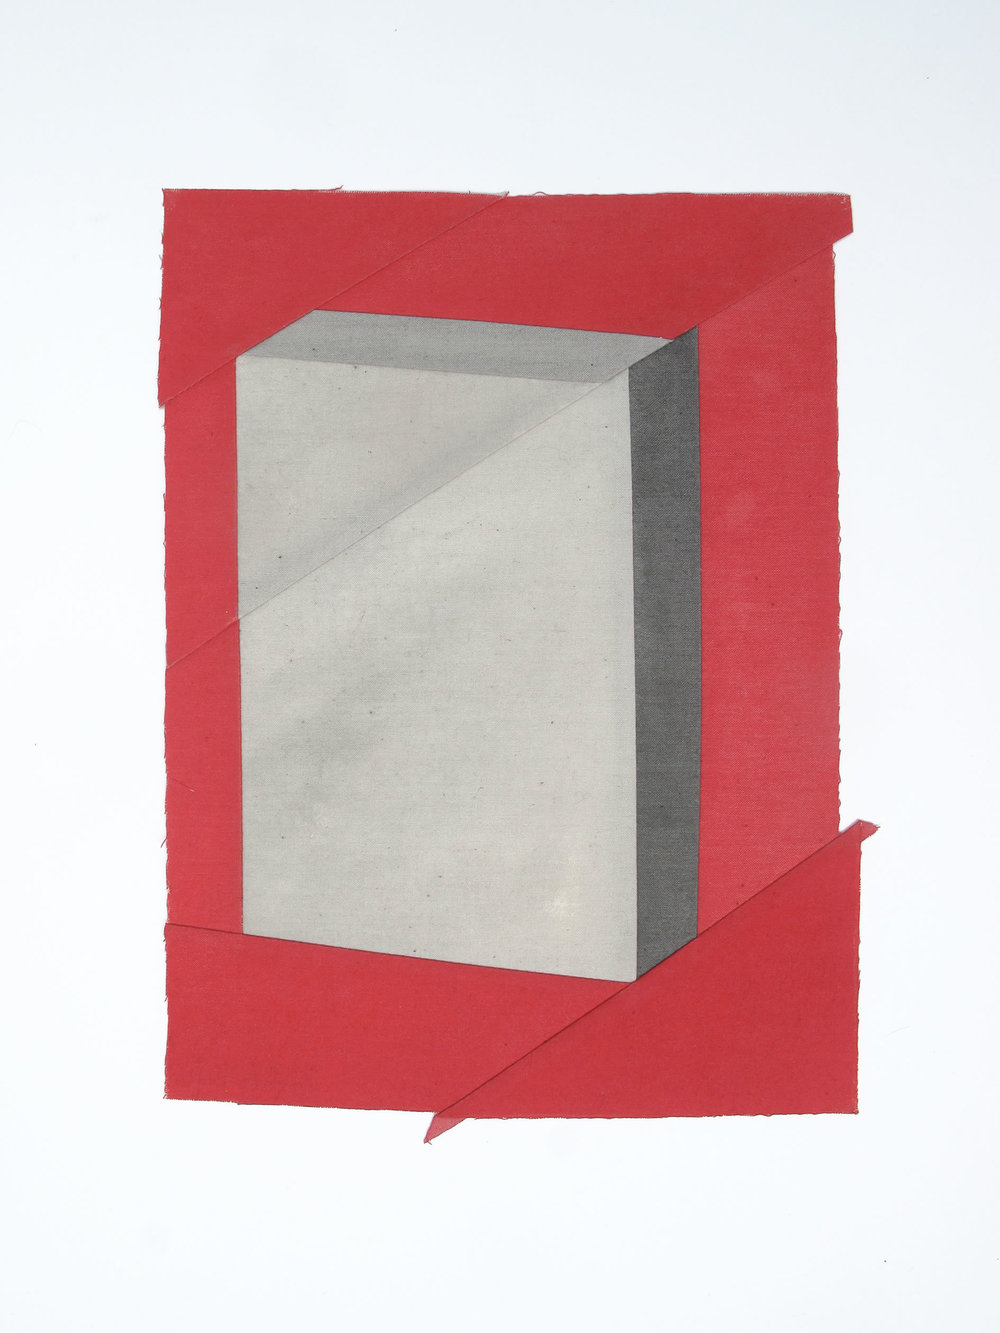 Gabrielle Teschner  -  Inter Gravissimus DAY 10 (minute) , 2013 acrylic ink on muslin approximately 10 x 7.5 inches